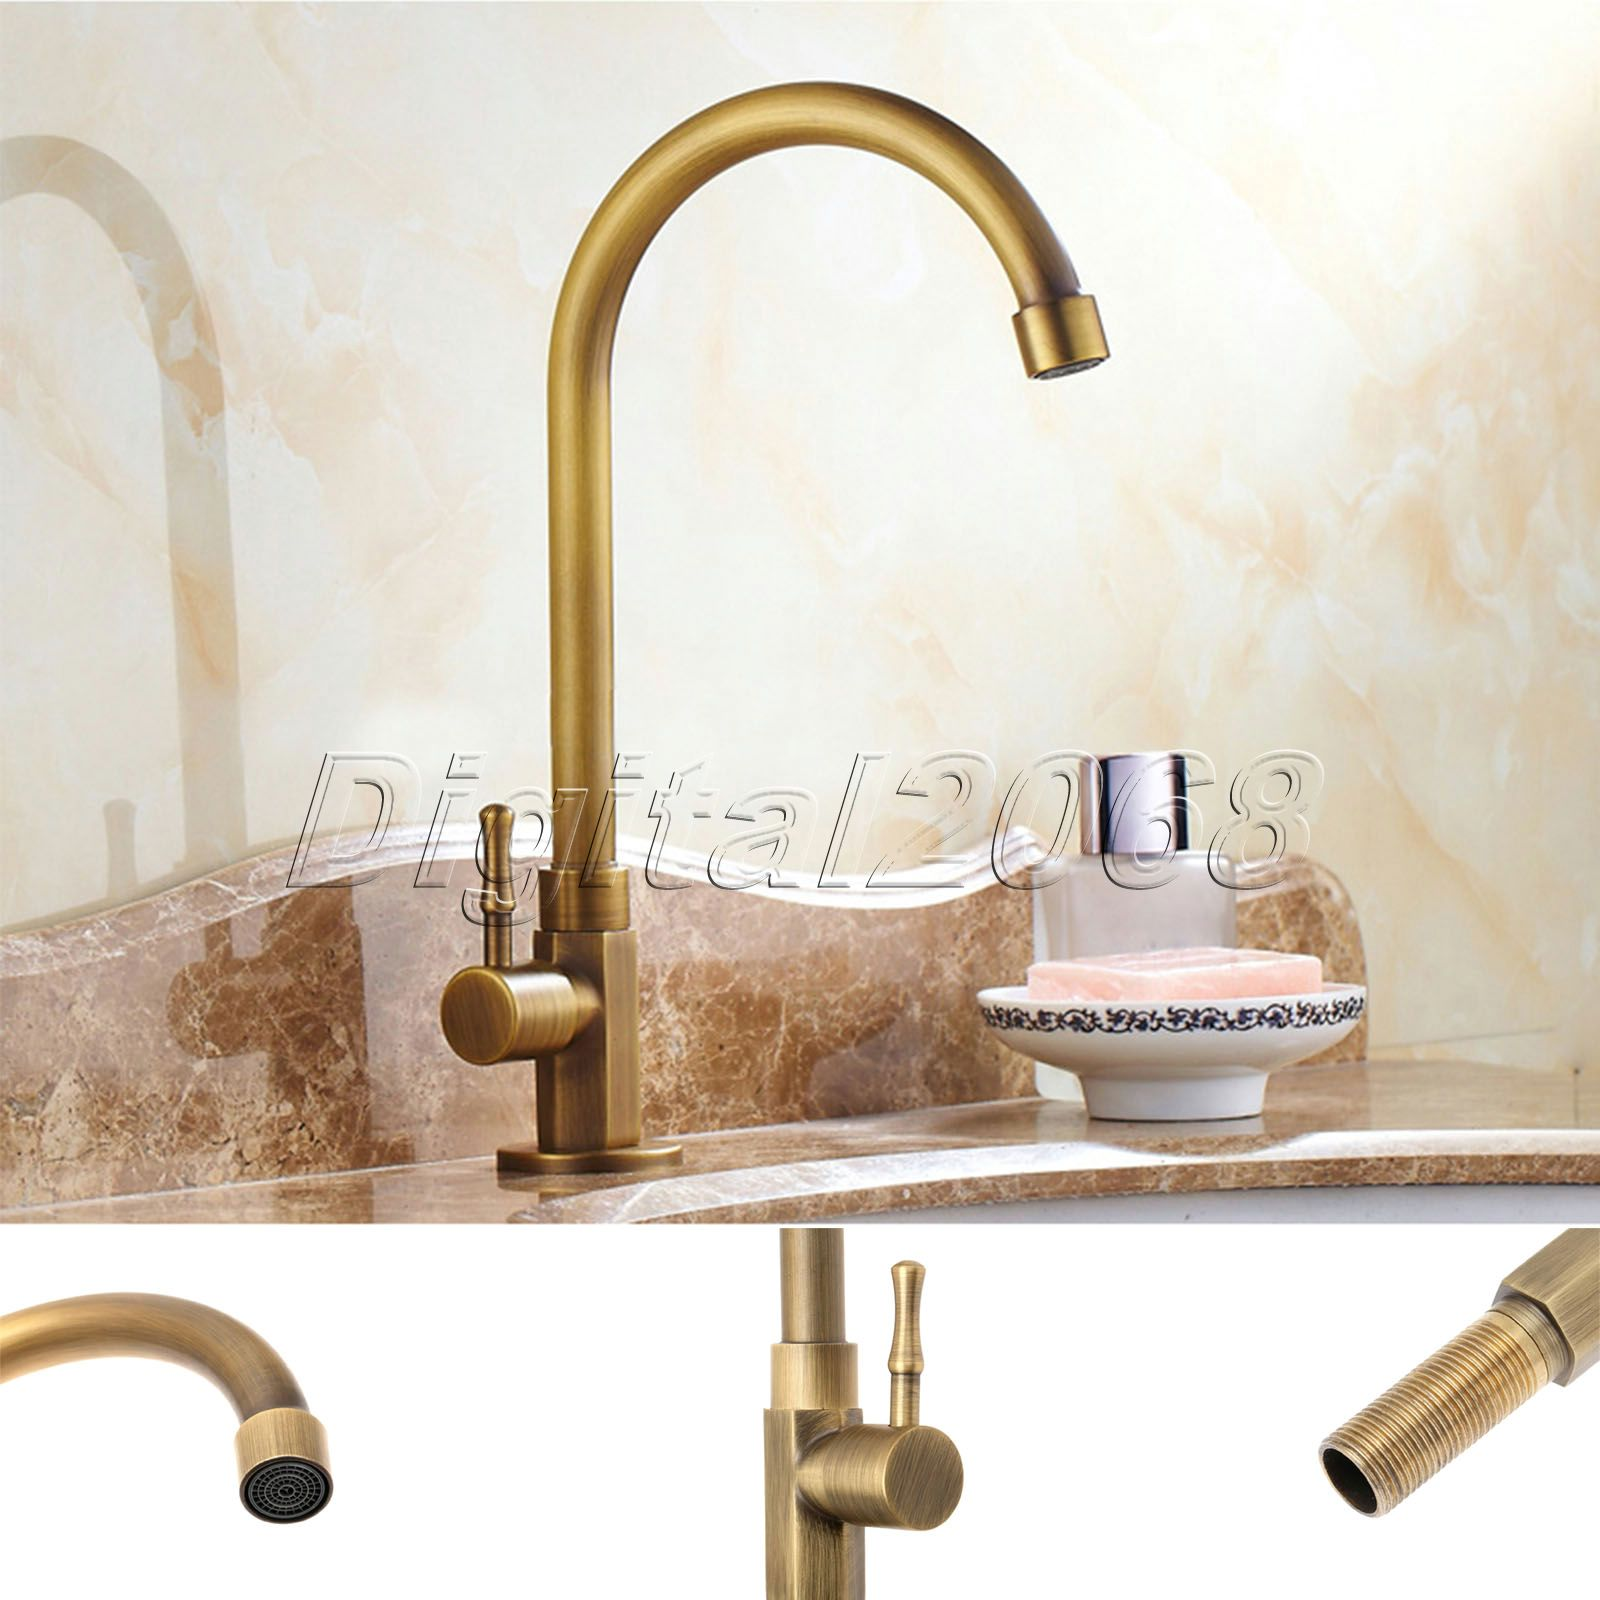 Brass Antique Luxury Bathroom Kitchen Sink Faucet Ceramic Valve Single Handle Swivel Spout